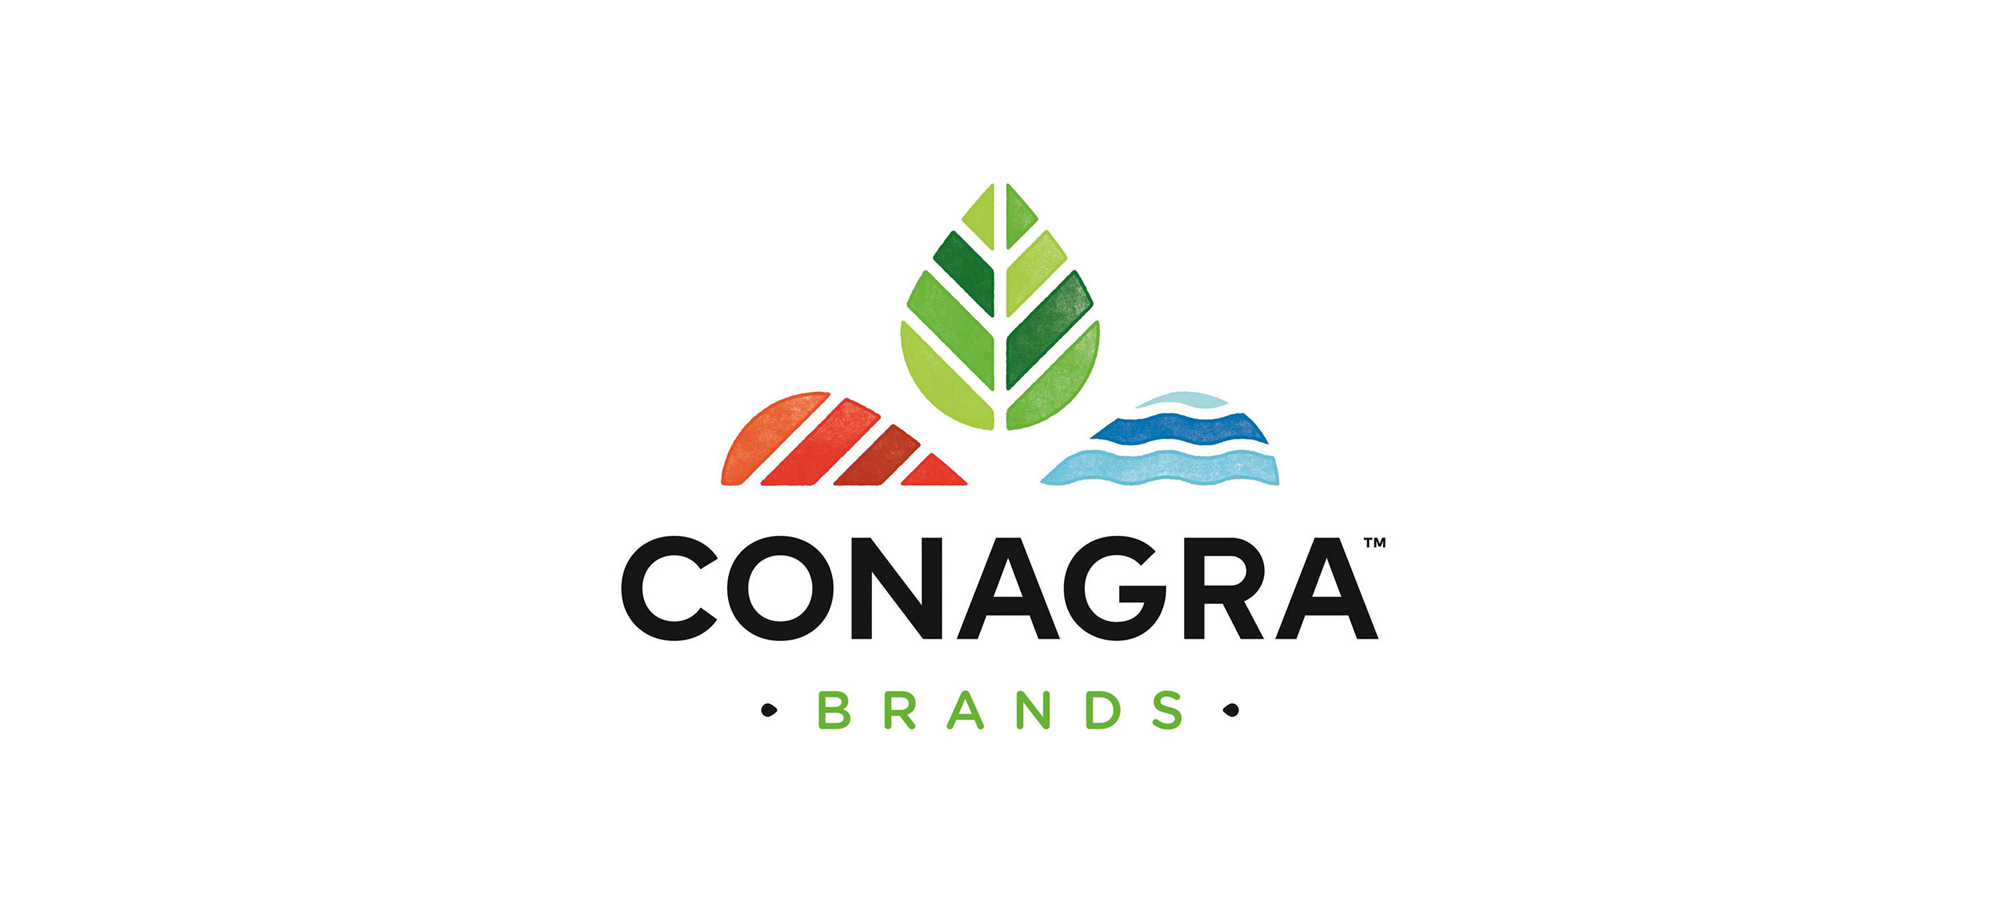 Conagra Brands - ADVENT was named Conagra Brands' strategic partner in the areas of innovation insulation strategies.